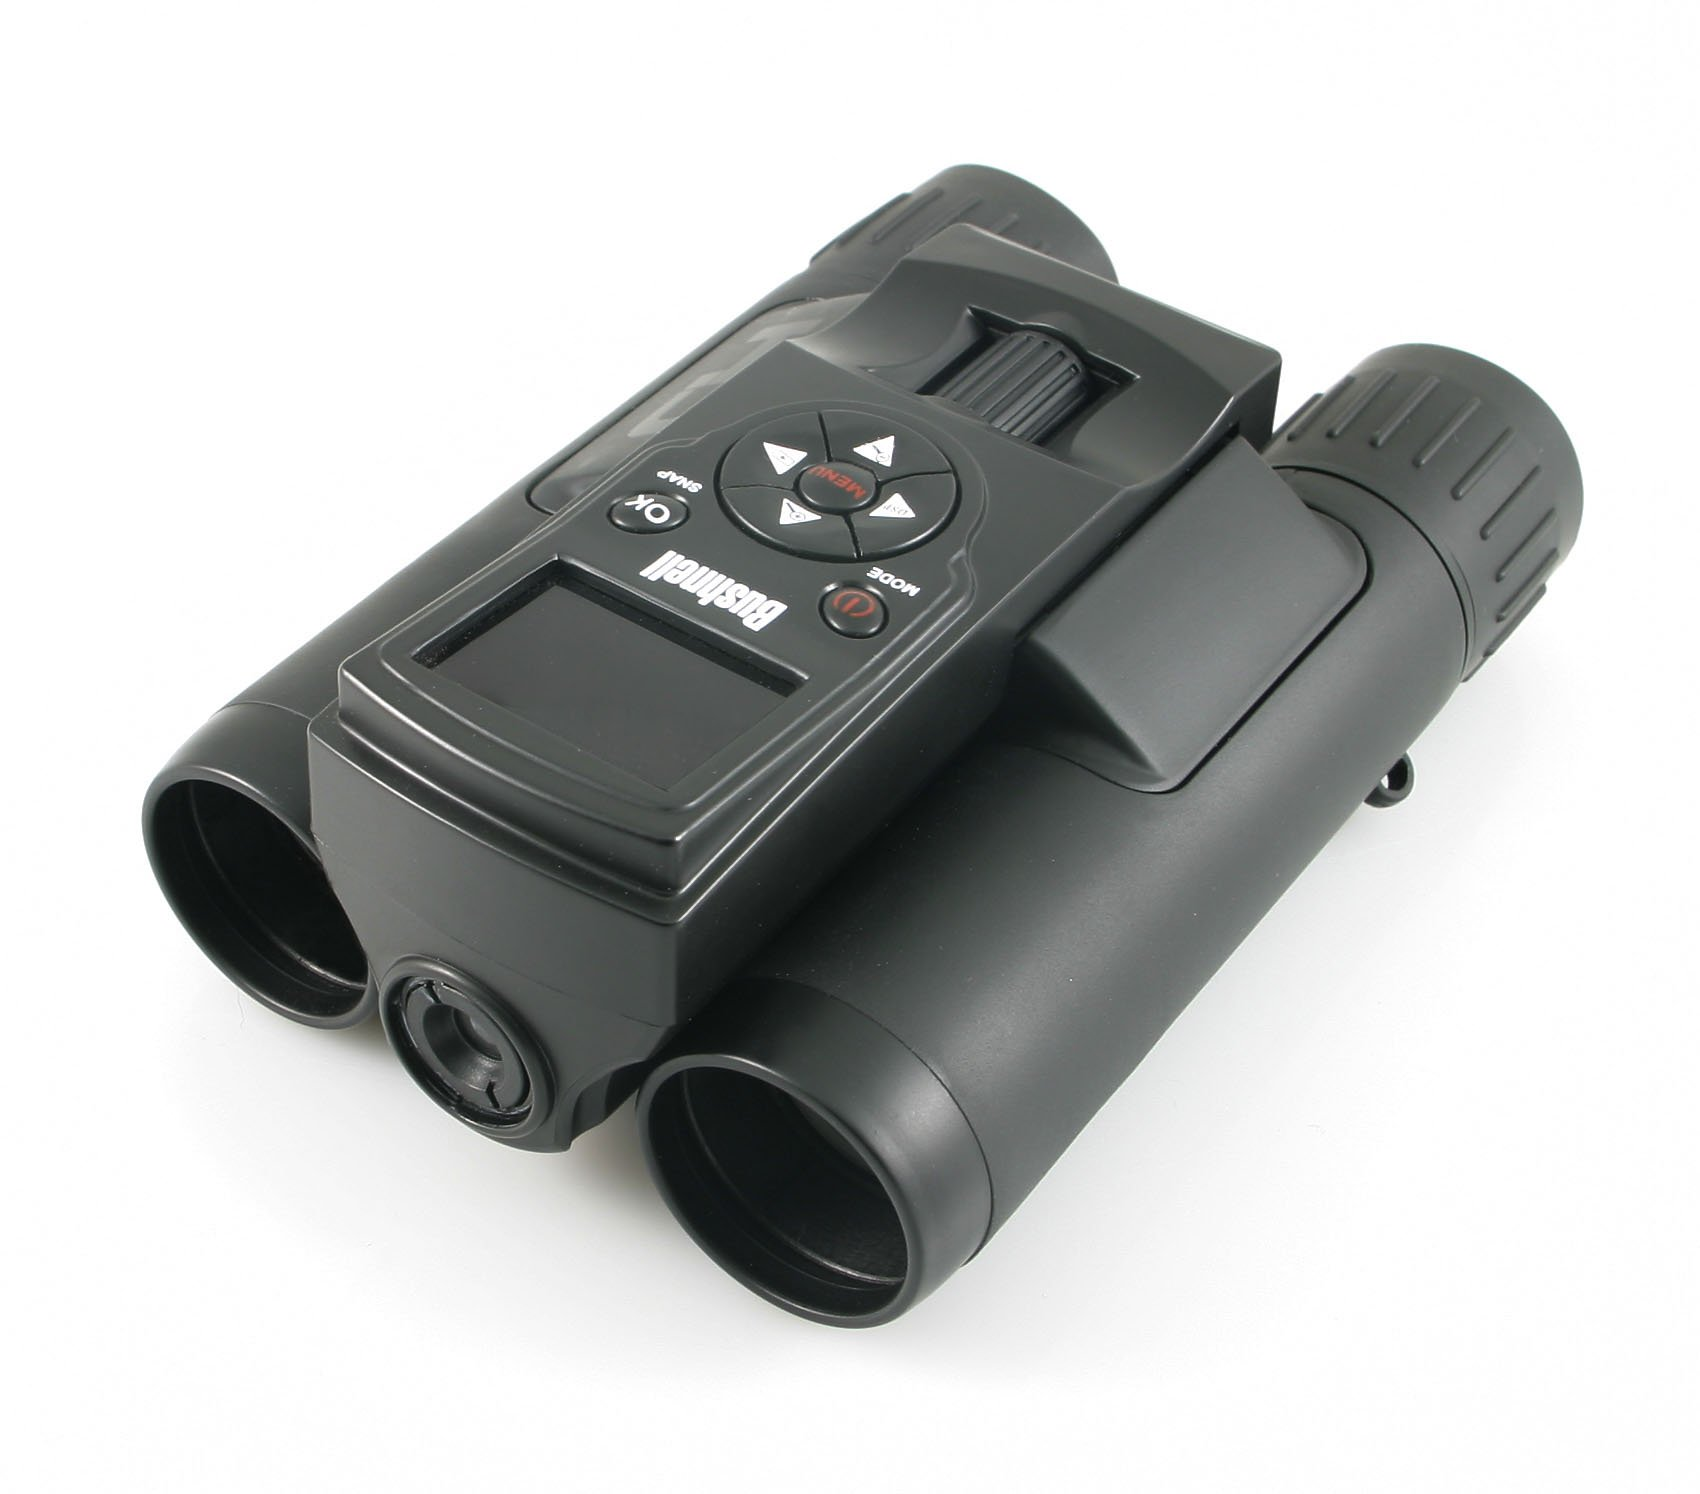 Bushnell ImageView 8 x 30mm Roof Prism Camera Binoculars with HD Video Recorder, Black by Bushnell